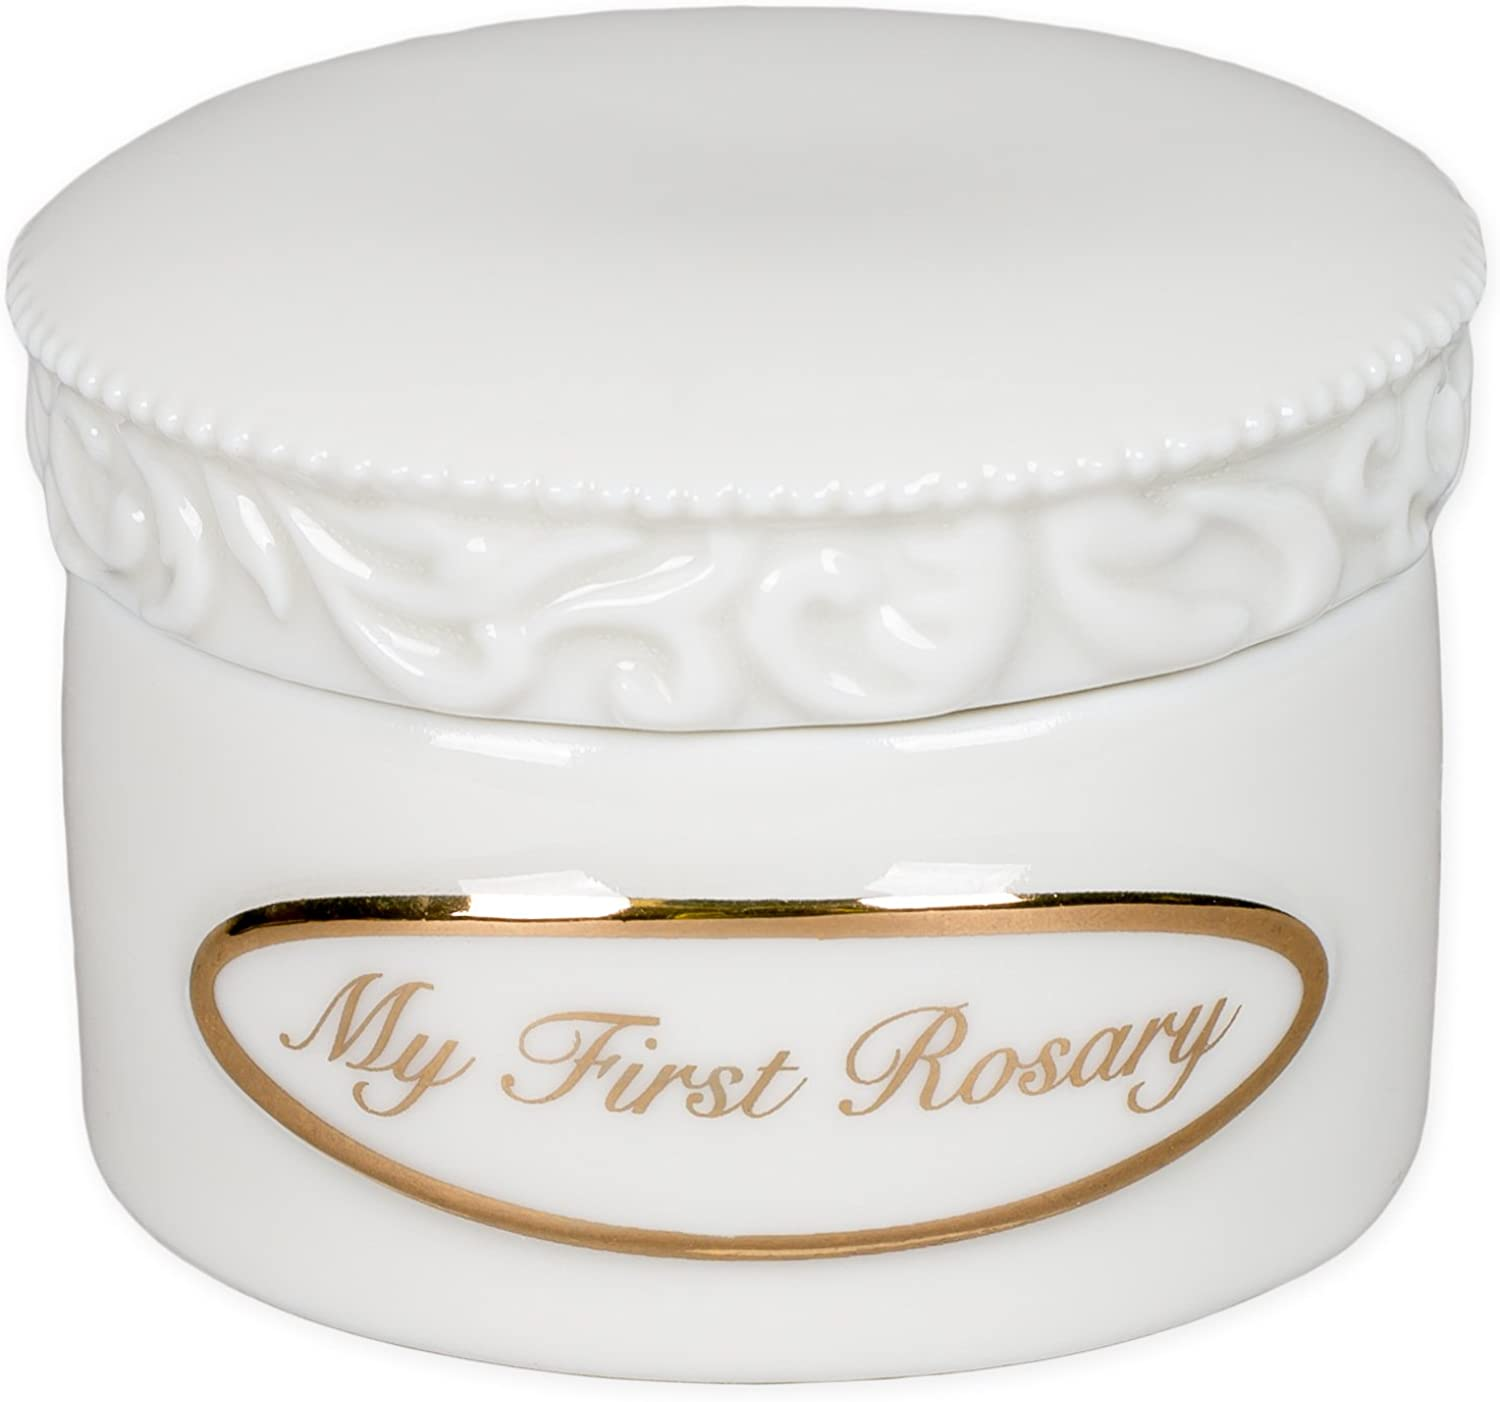 My First Rosary Gold Tone Letters 2 x 2 Inch White Porcelain Jewelry Box